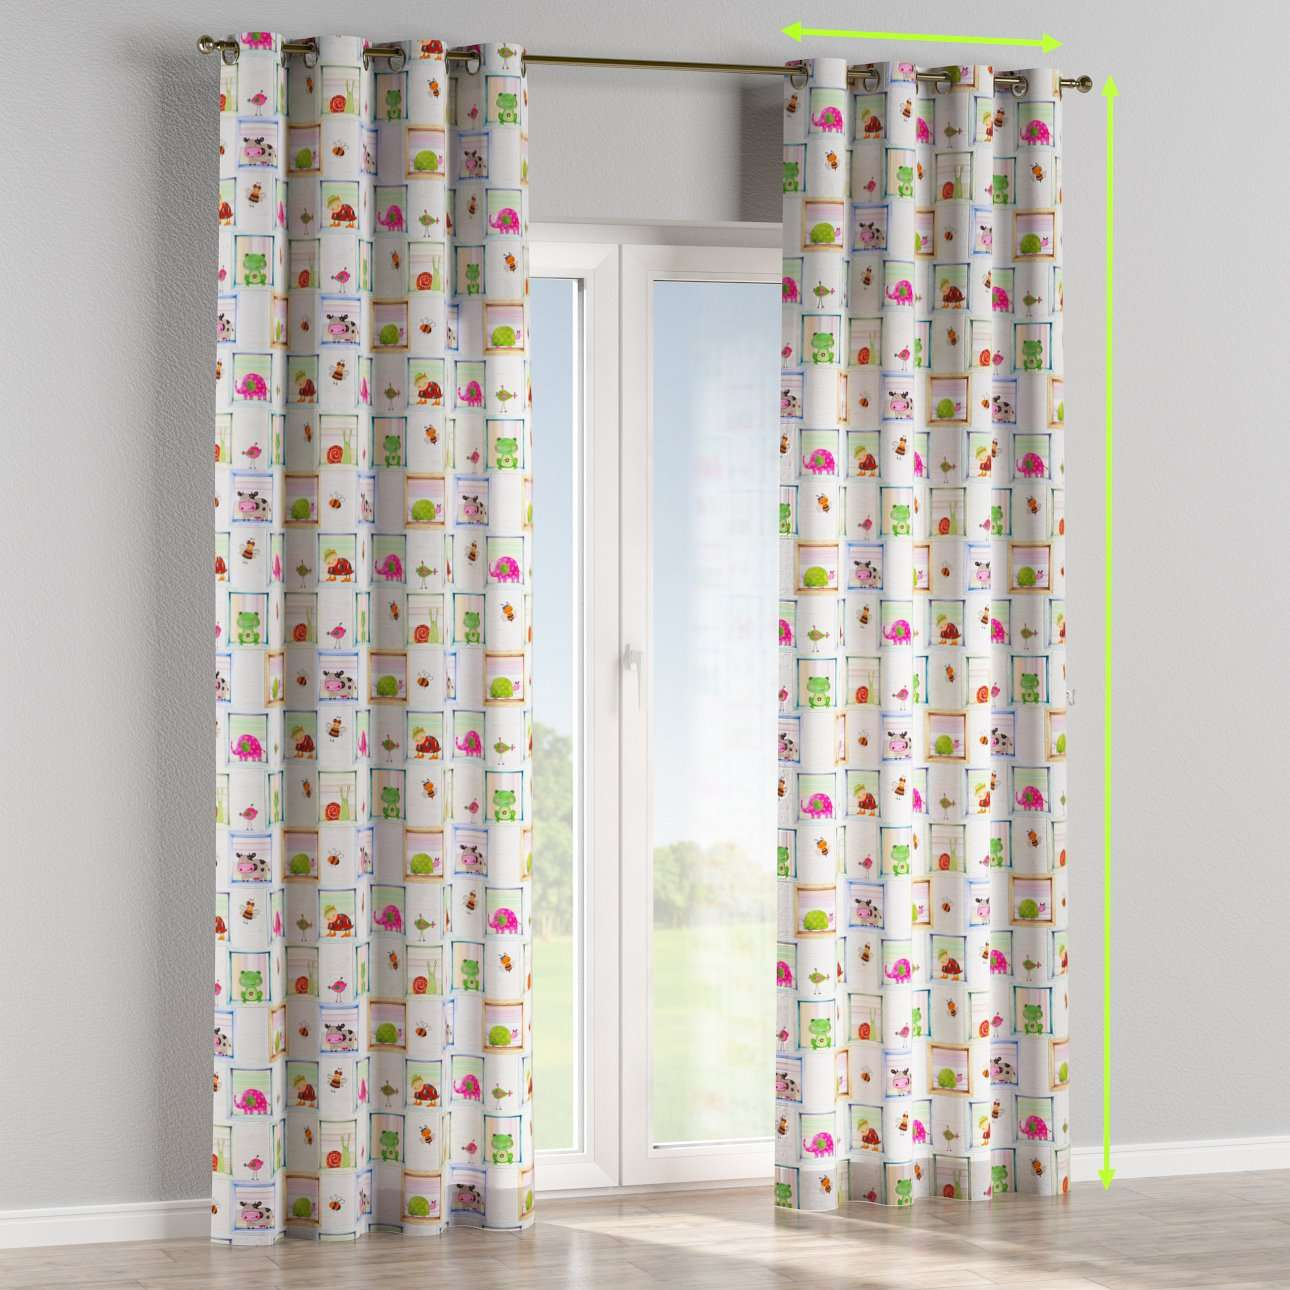 Eyelet curtains in collection Apanona, fabric: 151-04